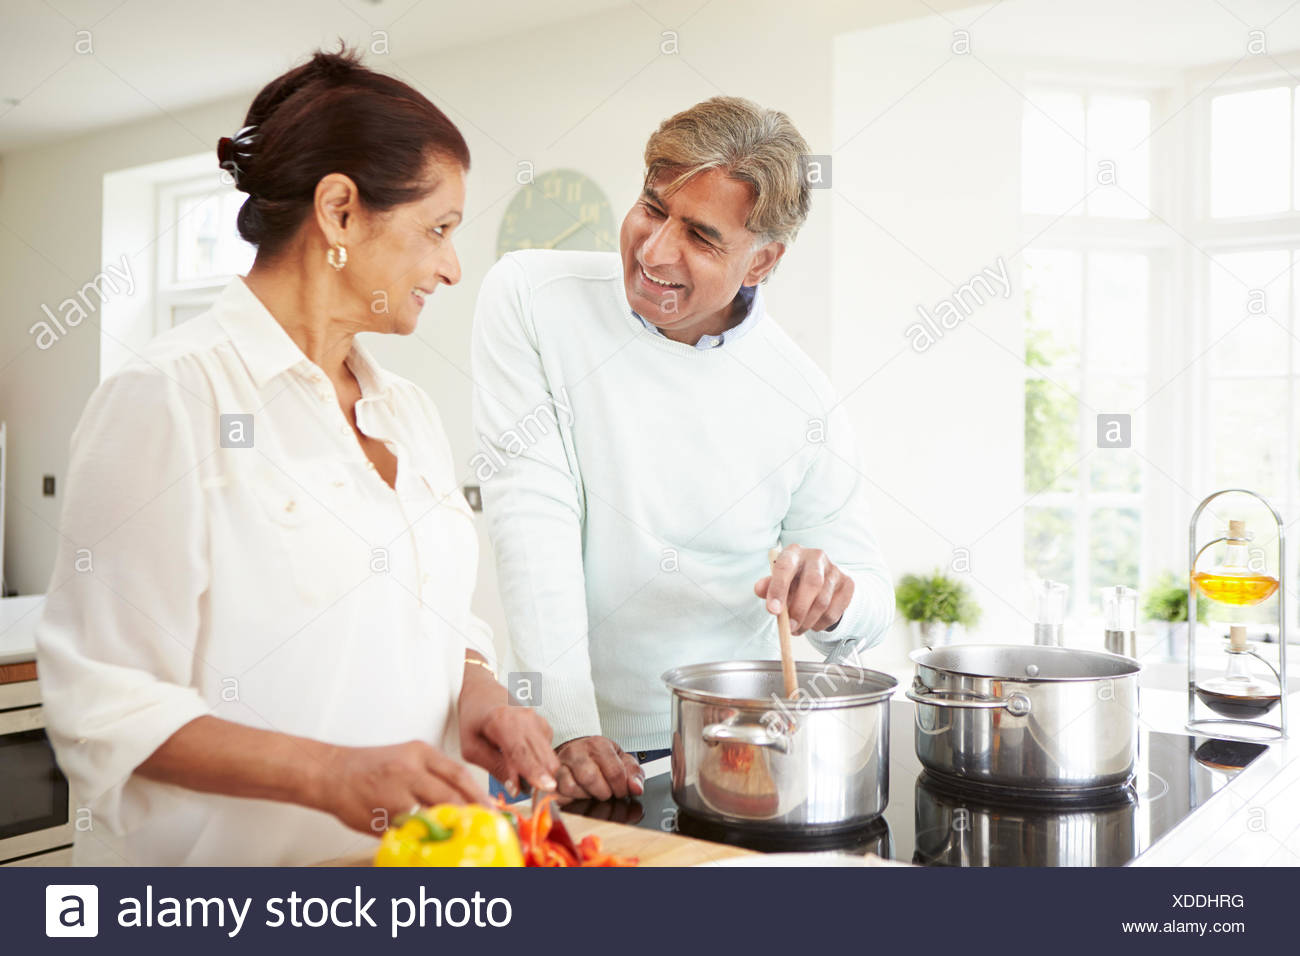 Senior Indian Couple Cooking Meal At Home Stock Photo 283655780 Alamy